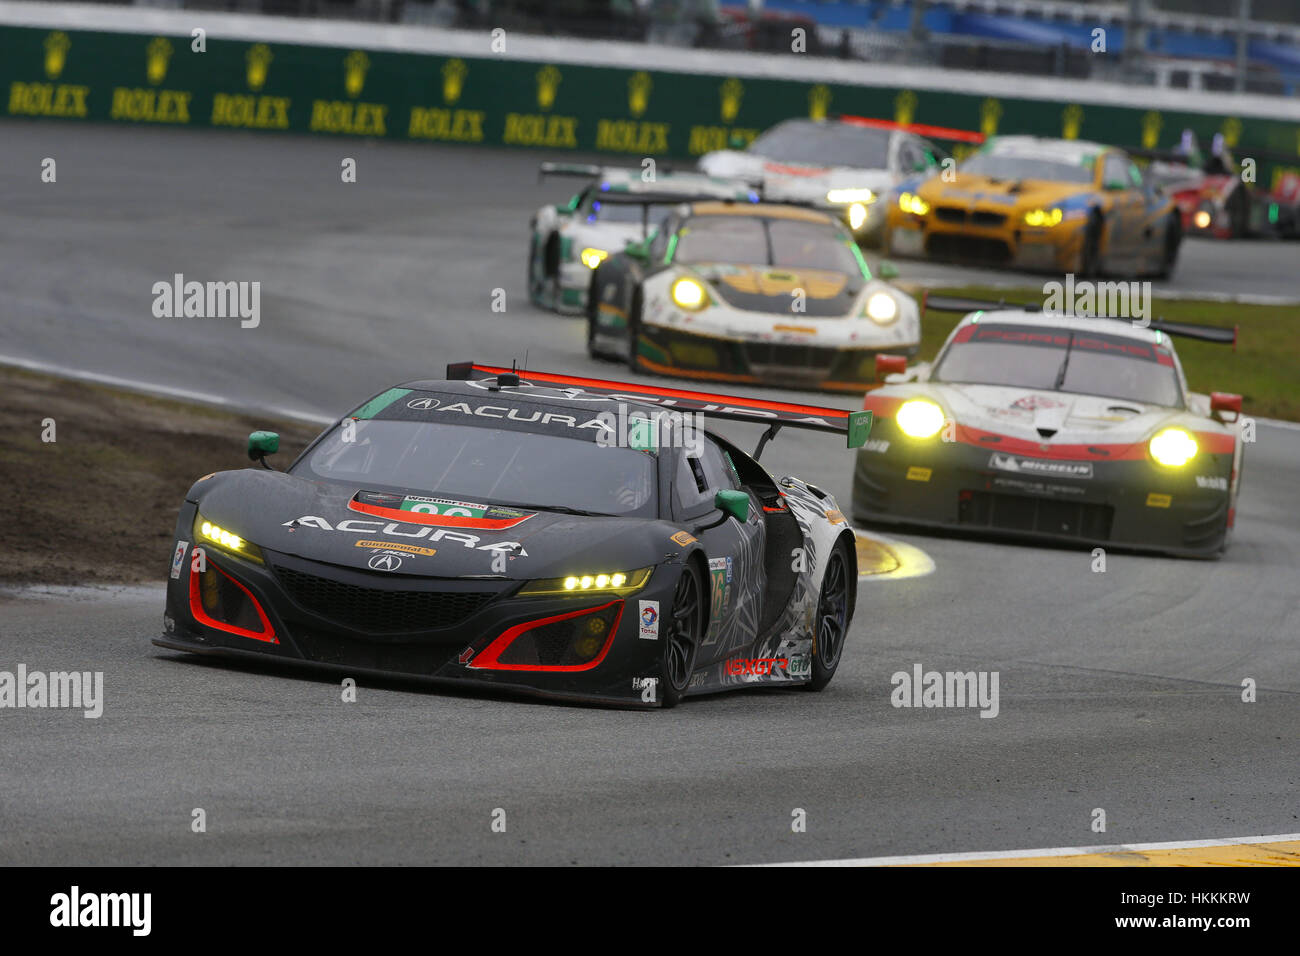 The michael shank racing acura nsx